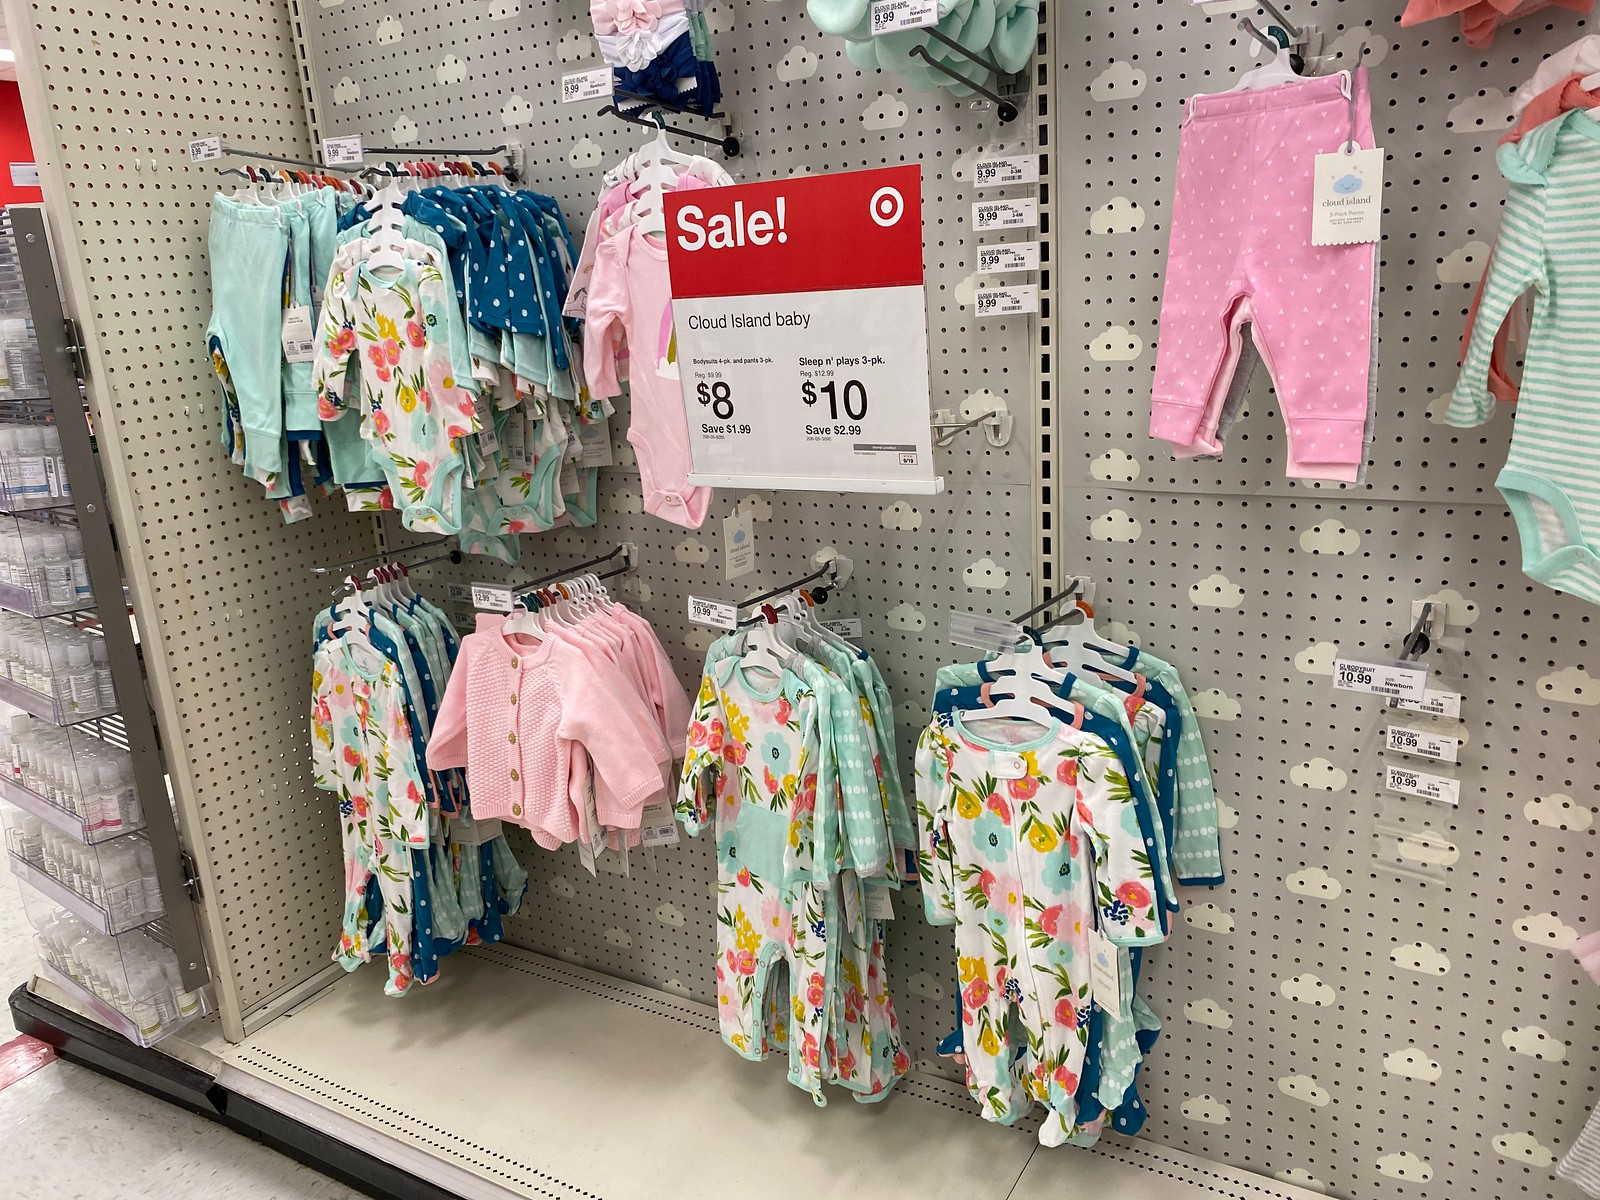 Cloud Island Baby Apparel in store